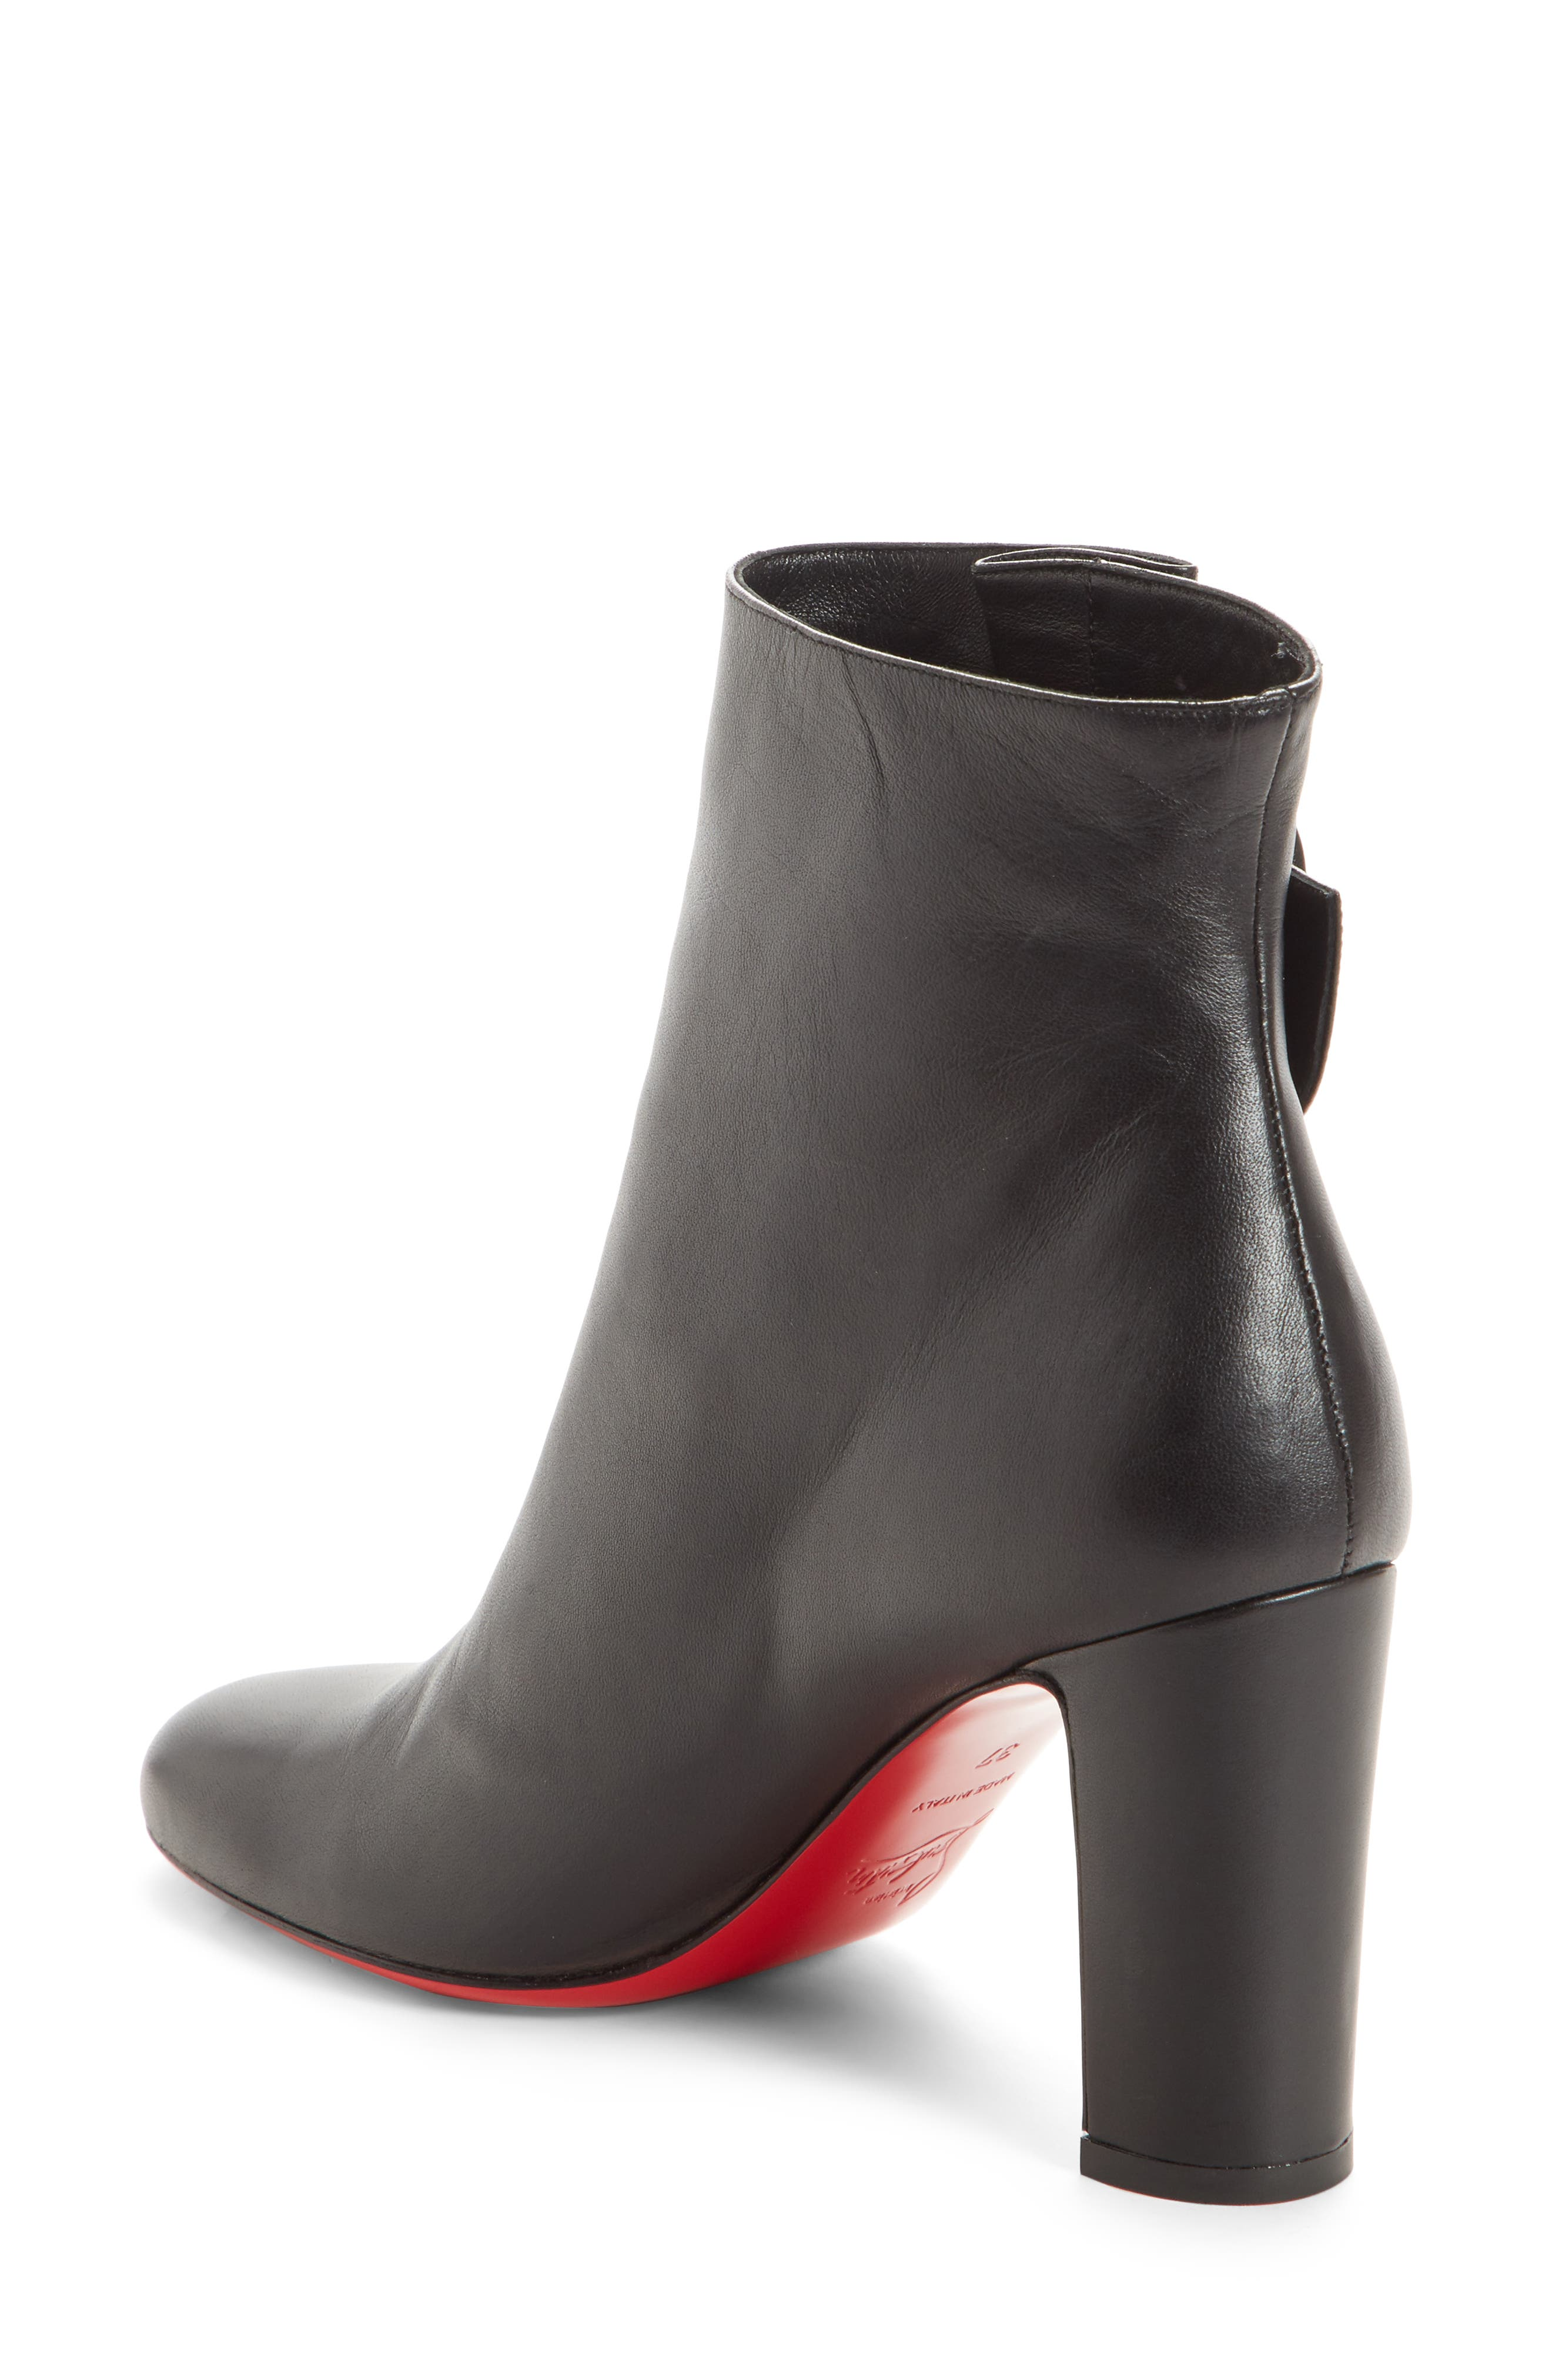 CHRISTIAN LOUBOUTIN,                             Tres Olivia Buckle Bootie,                             Alternate thumbnail 2, color,                             BLACK LEATHER